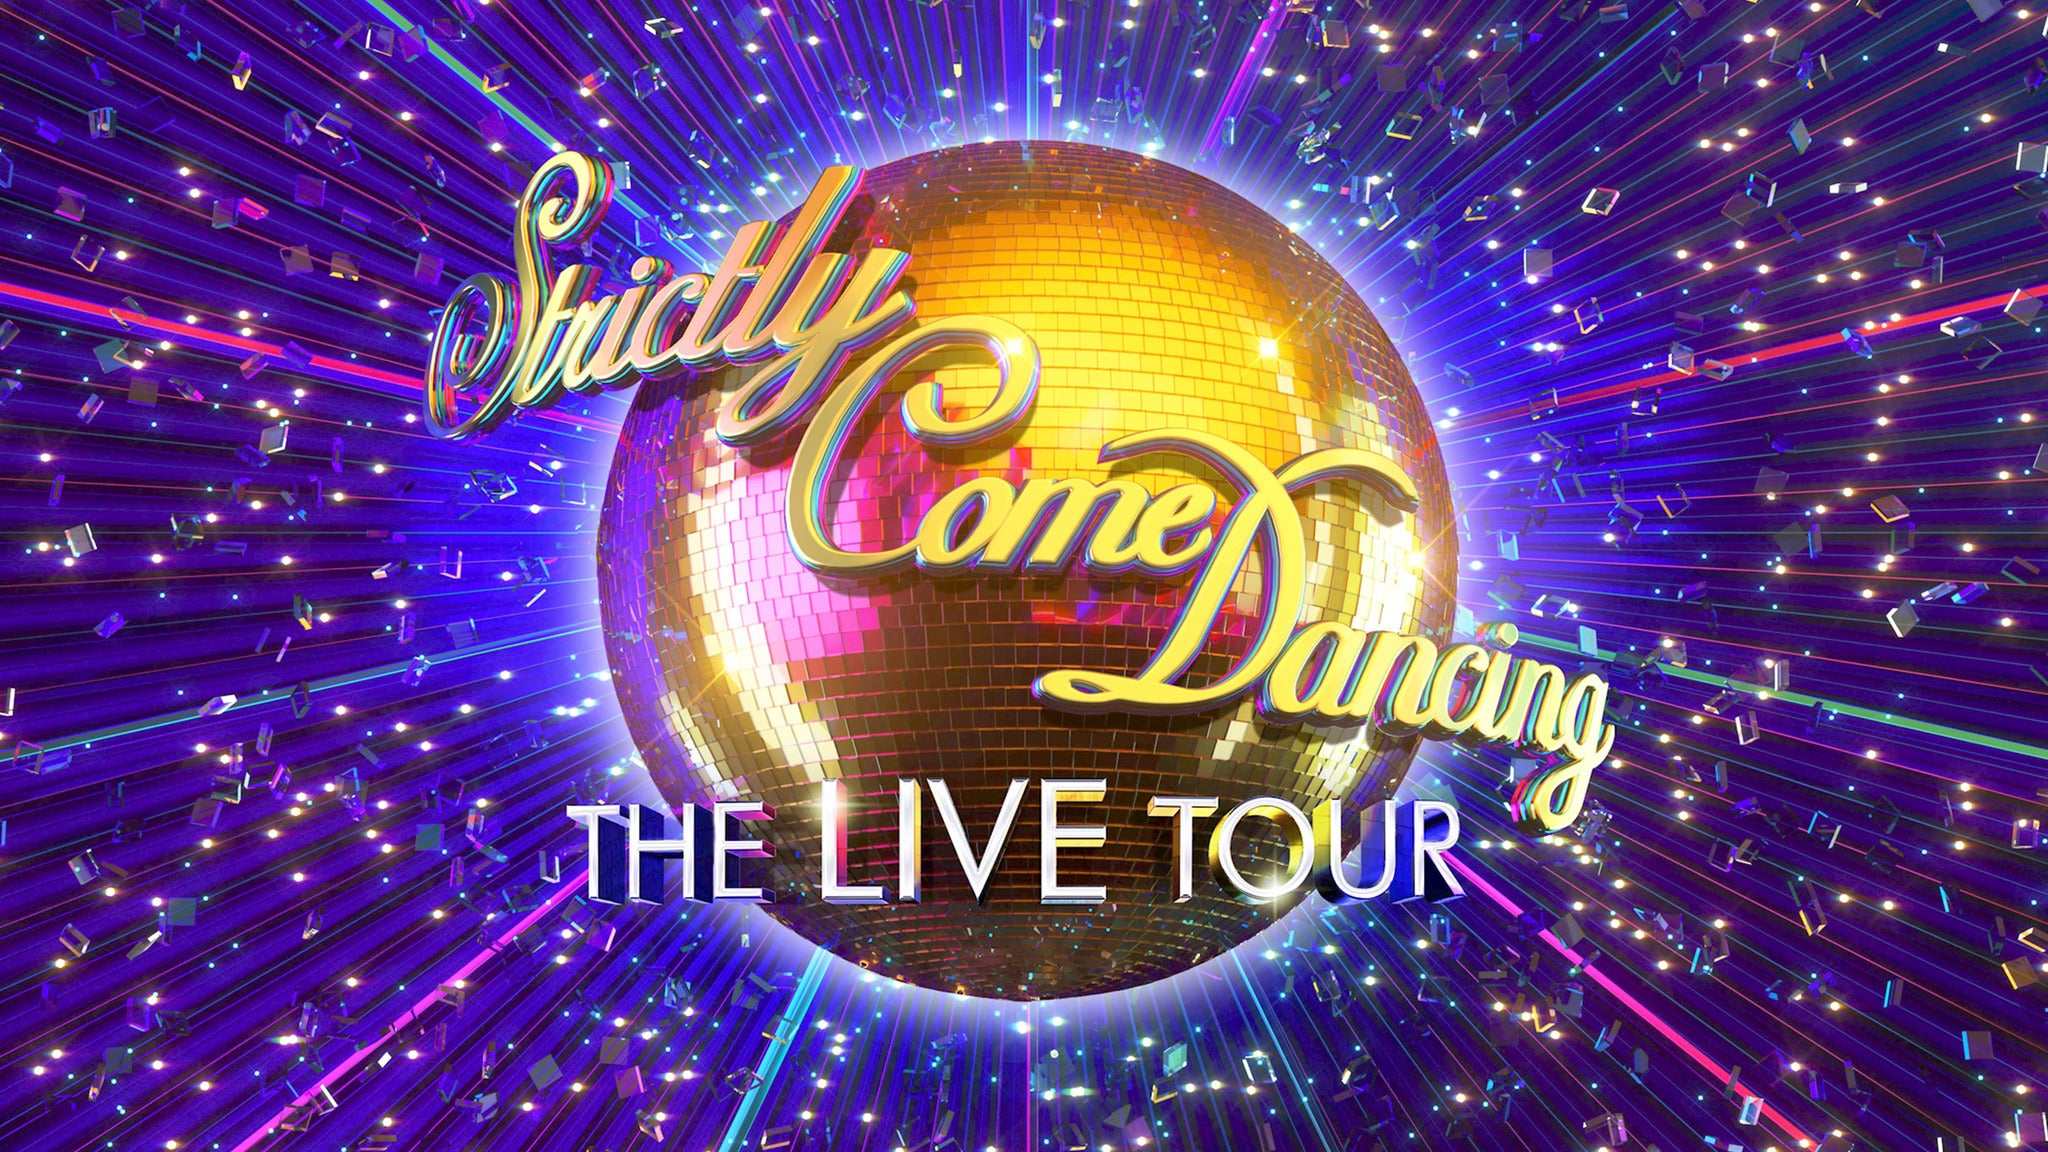 Strictly Come Dancing - the Live Tour First Direct Arena Seating Plan